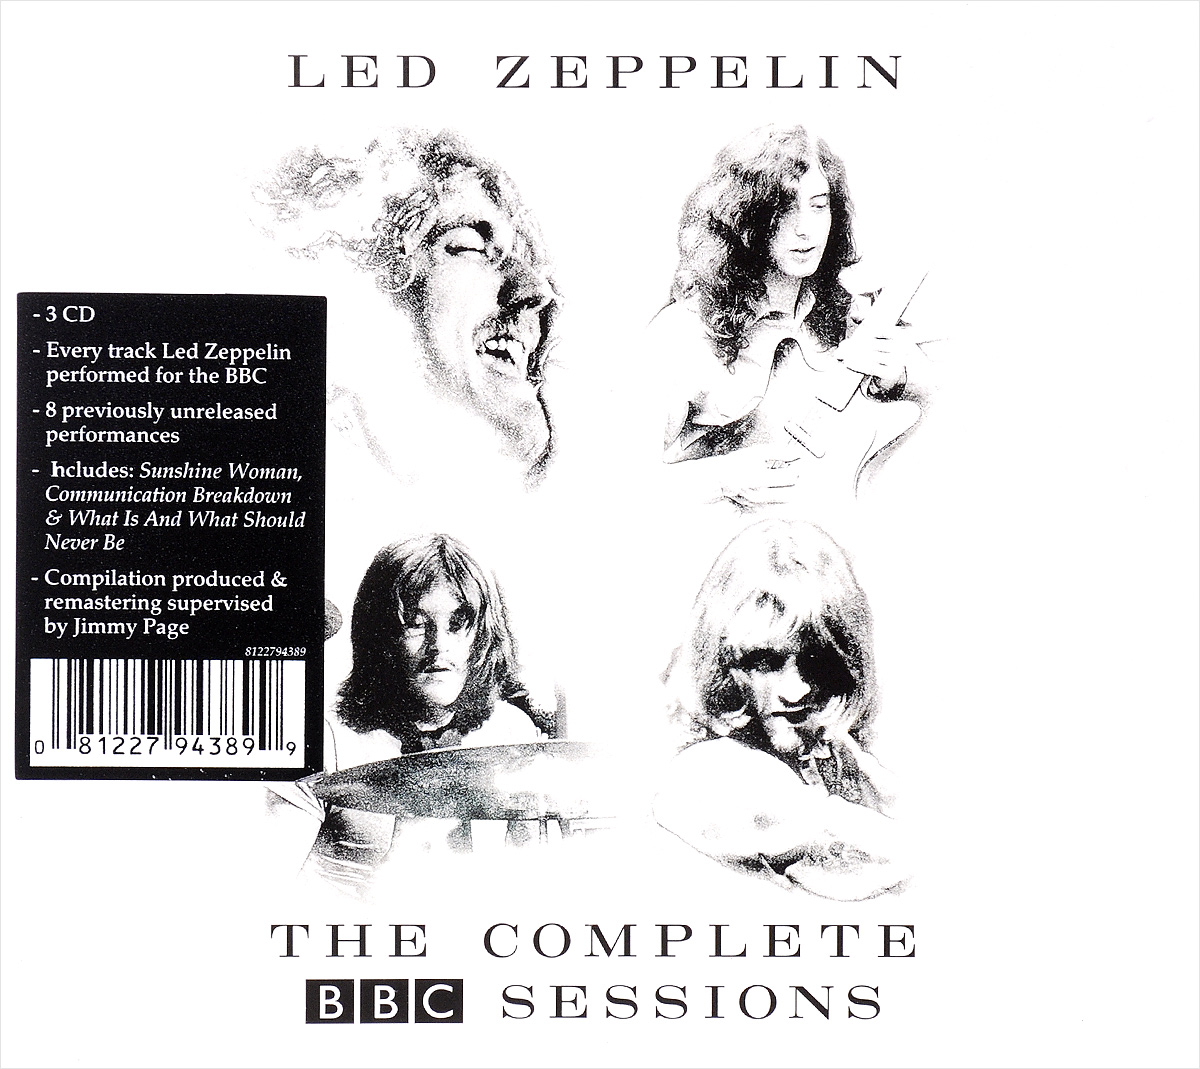 Led Zeppelin Led Zeppelin. The Complete BBC Sessions (3 CD) isd1820 sound voice recording and playback module board 3 5v